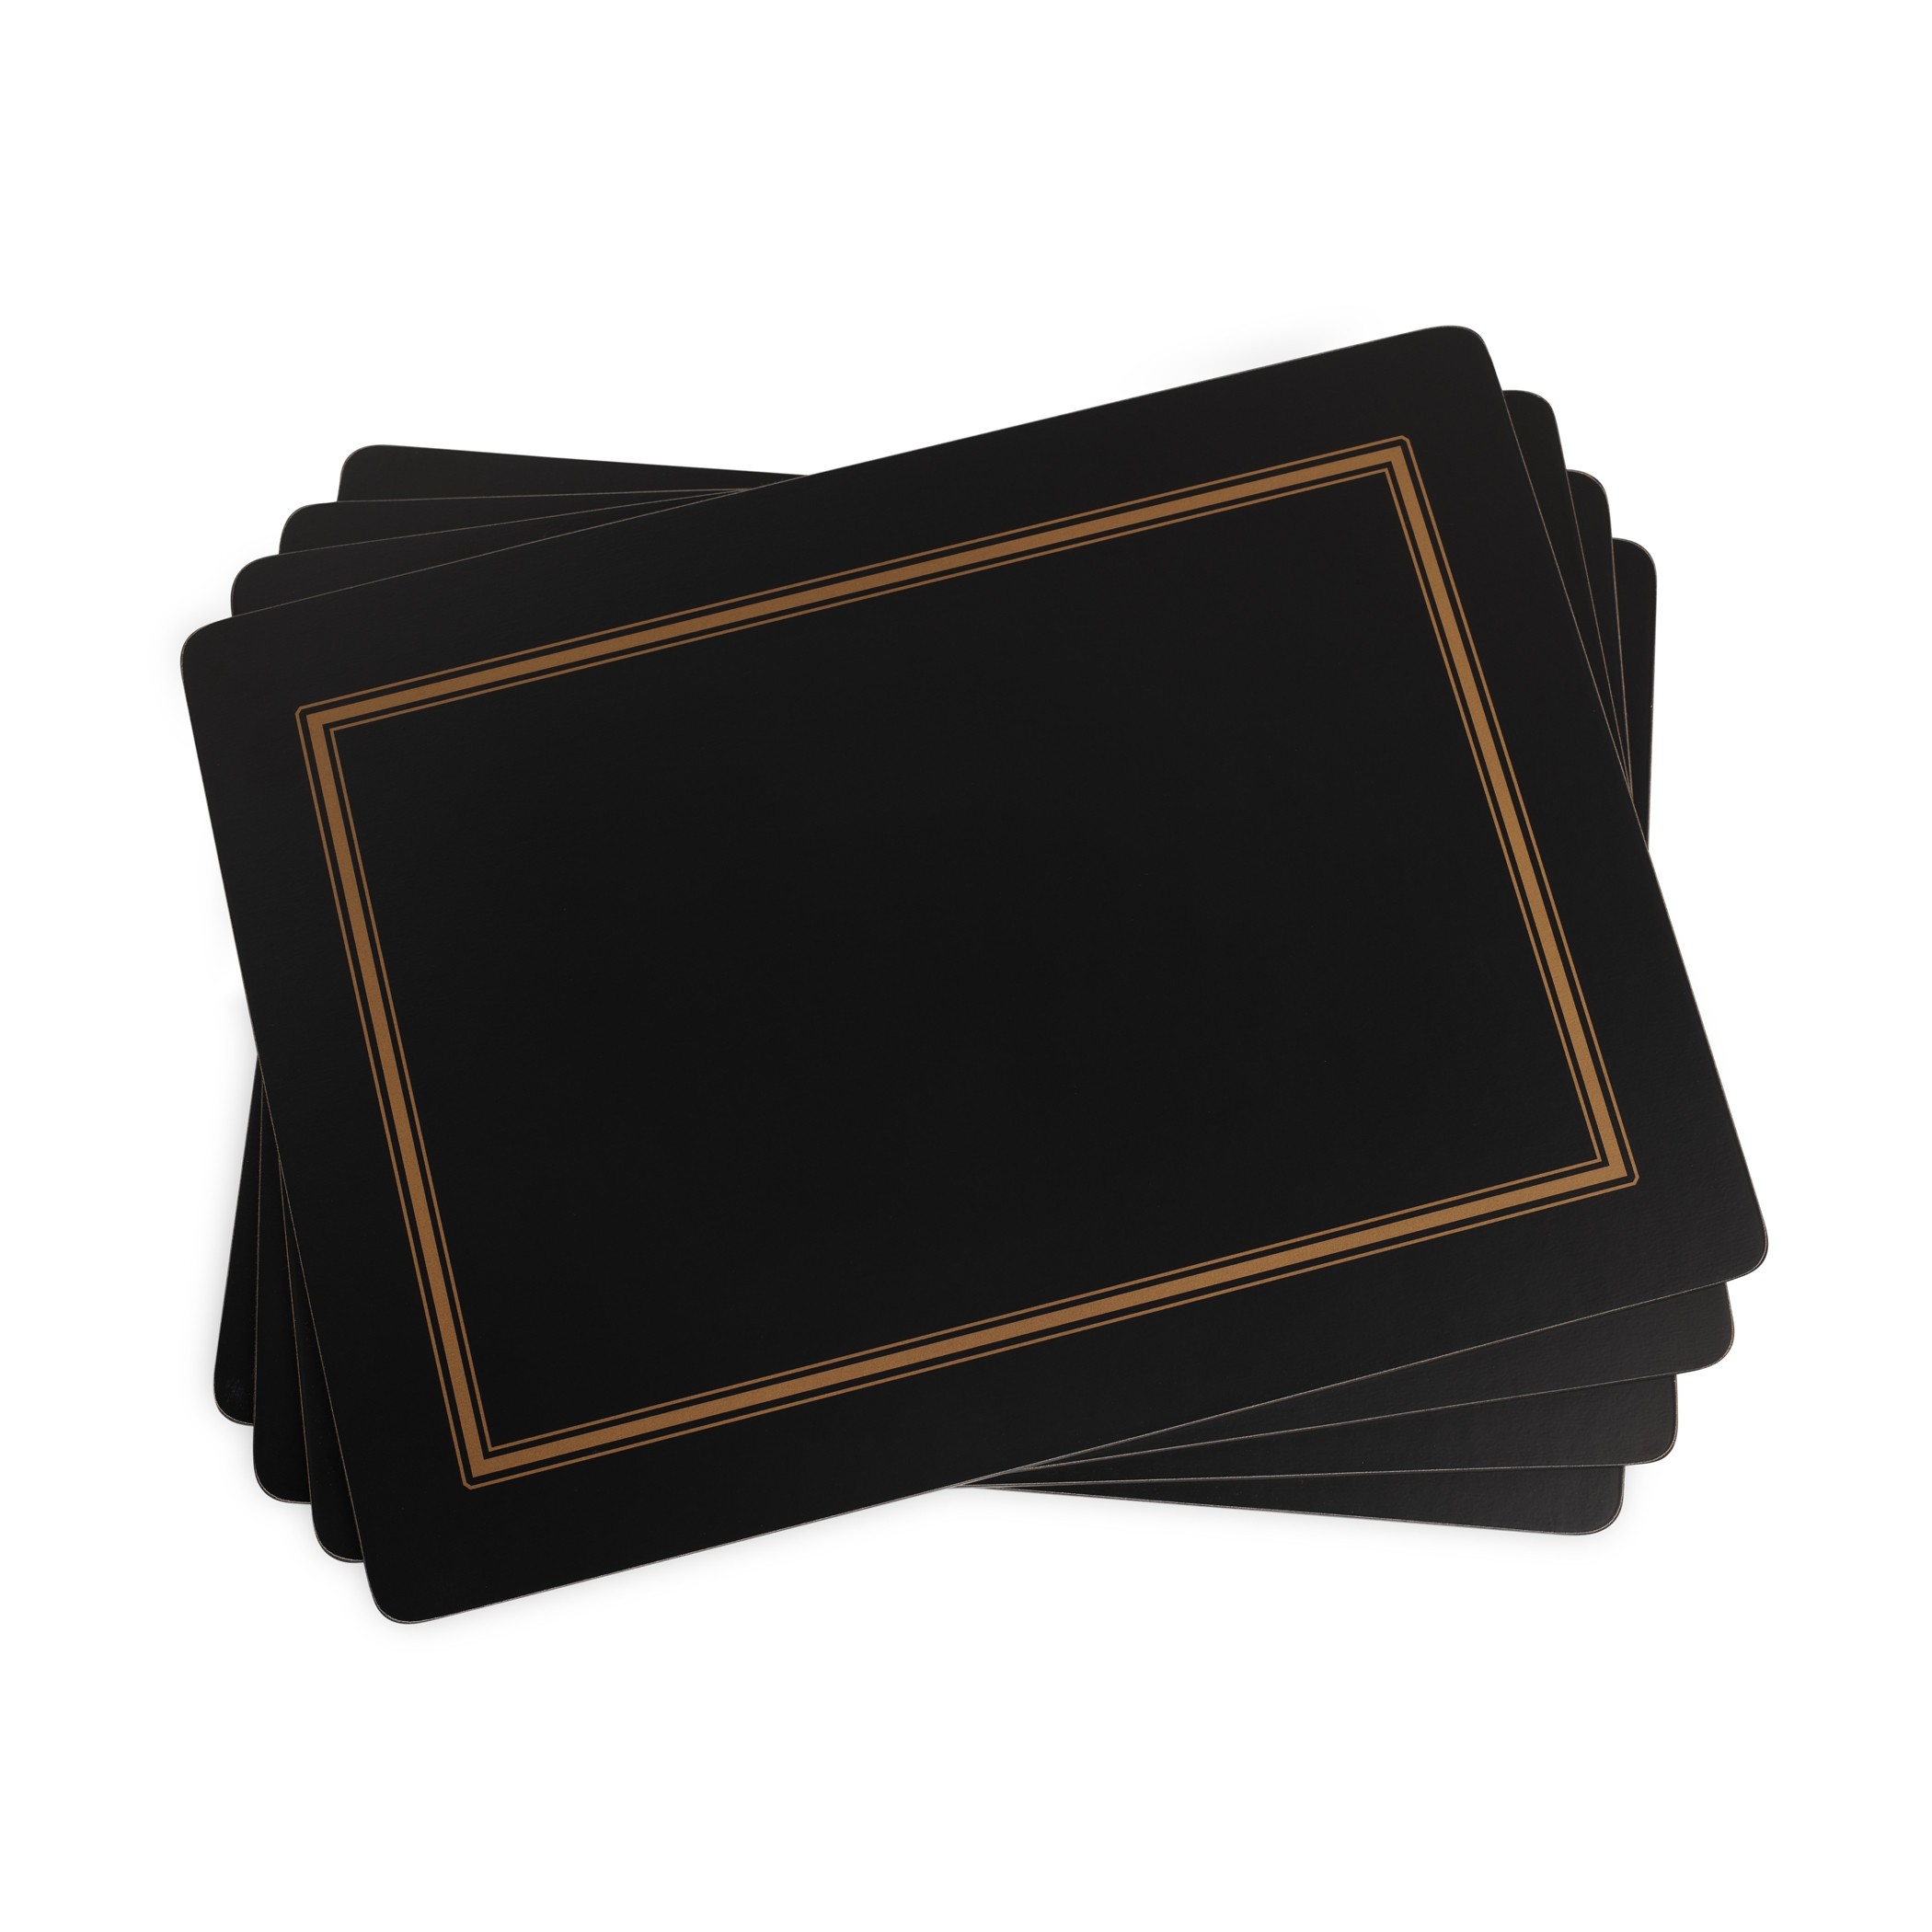 Pimpernel Classic Black Placemats Set of 4 image number 0